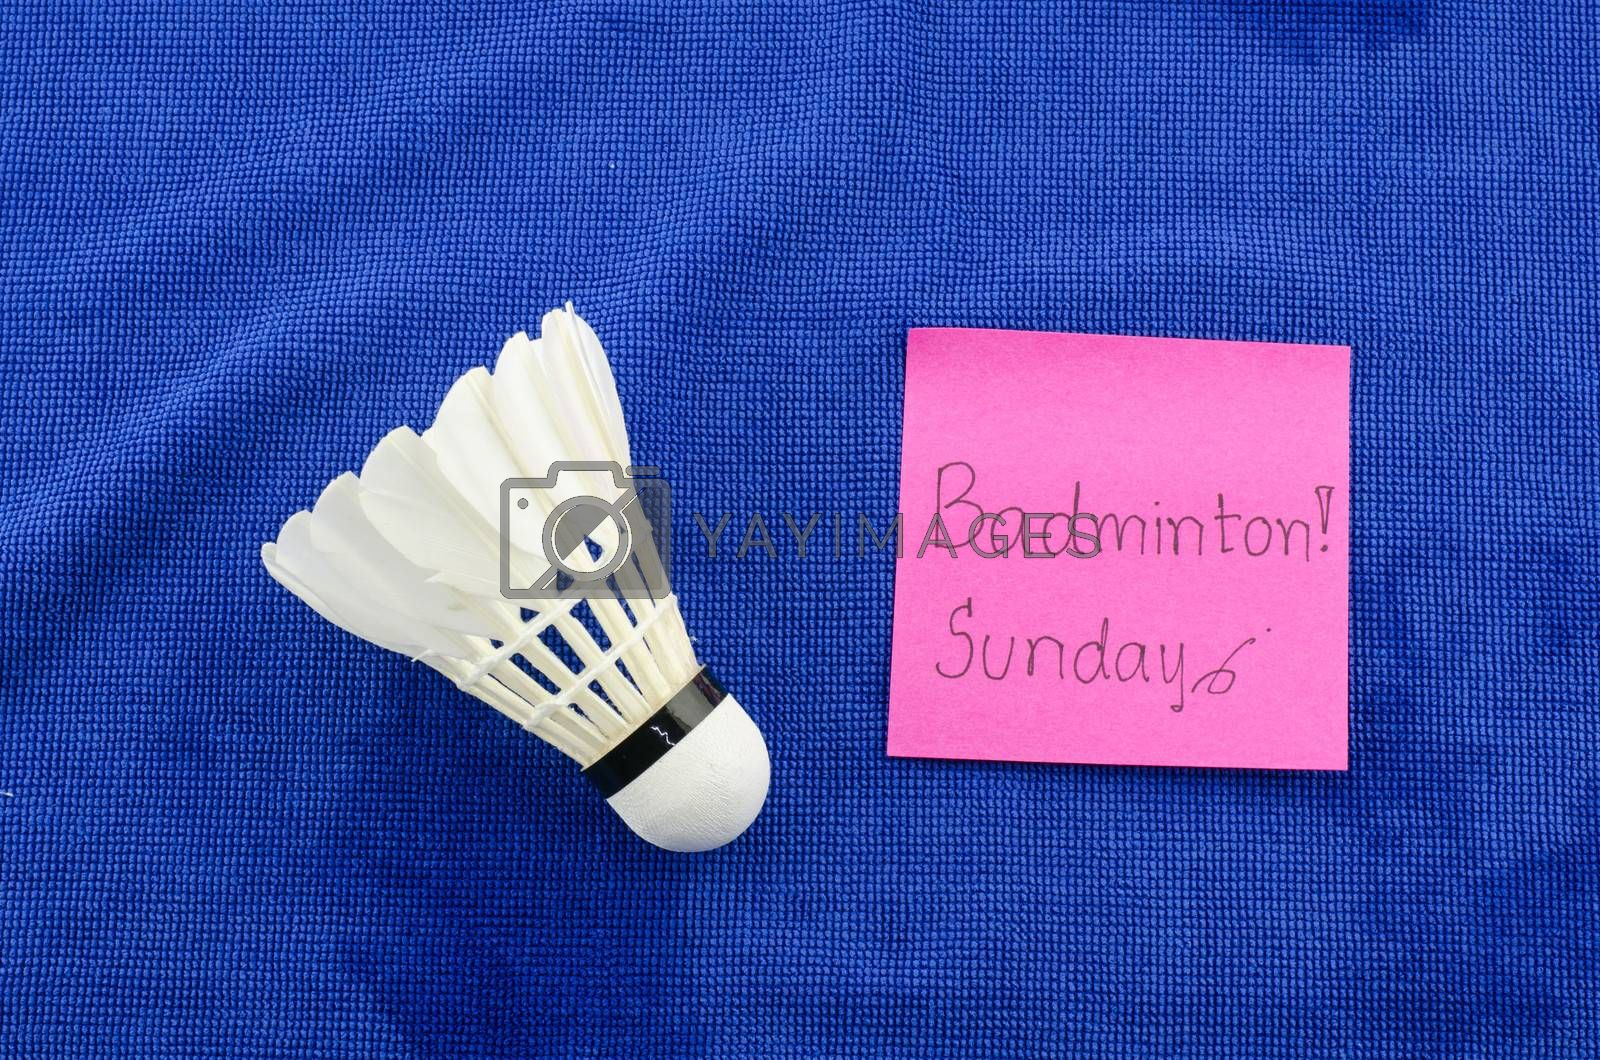 don't forget play badminton on sunday